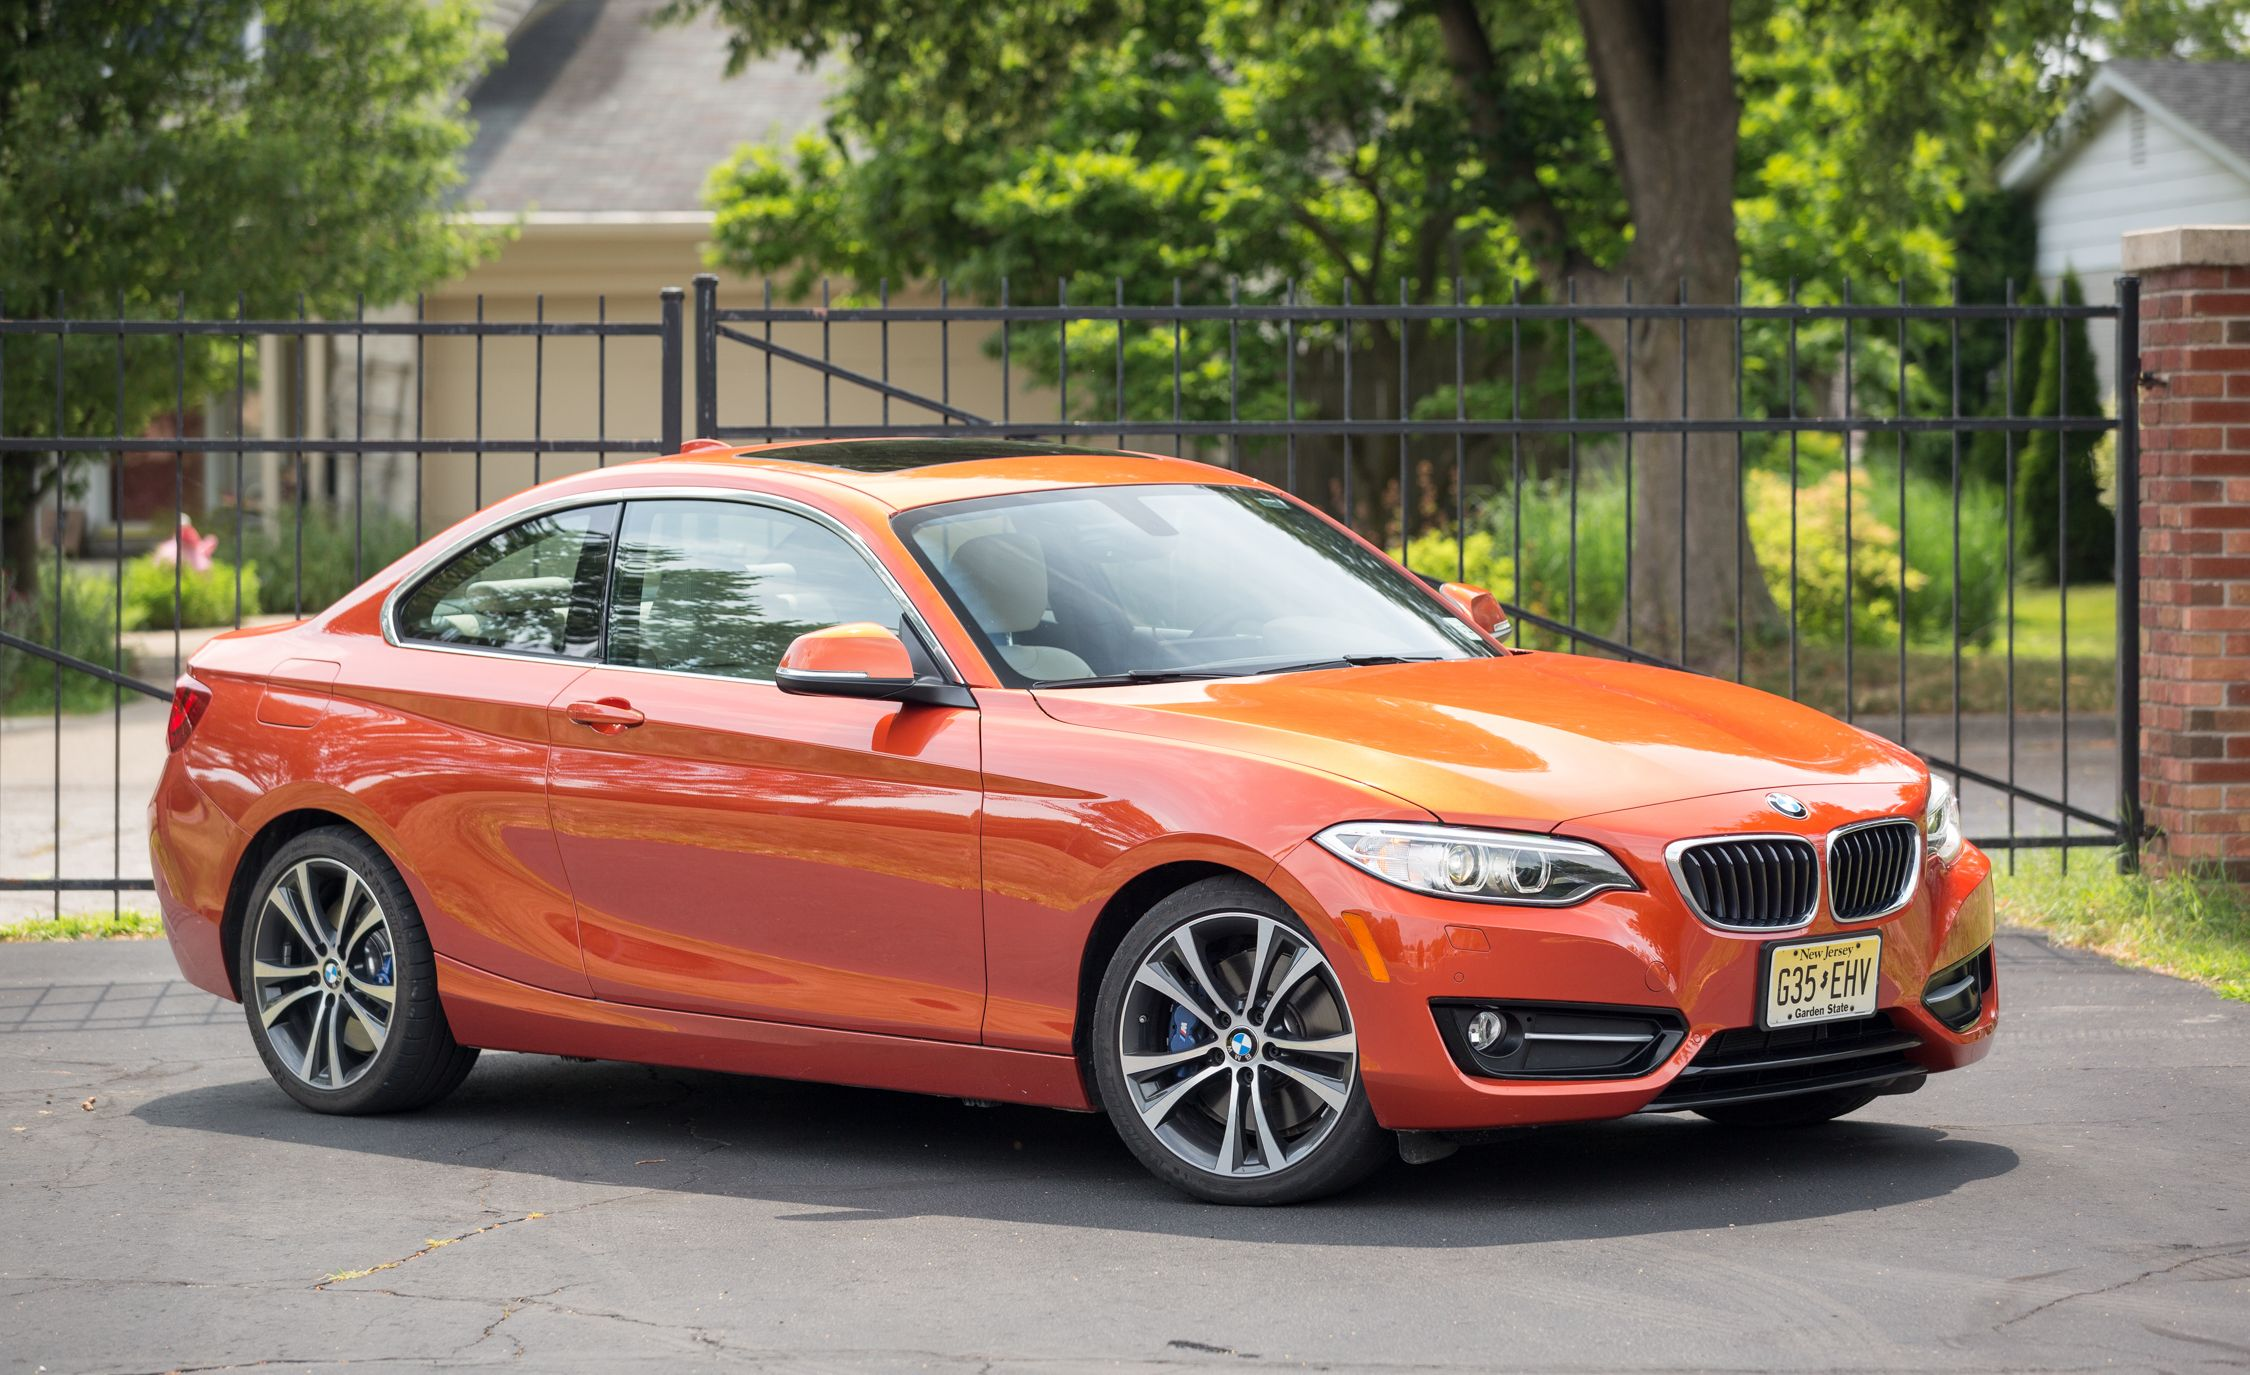 2020 Bmw 2 Series Reviews Price Photos And Specs Car Driver